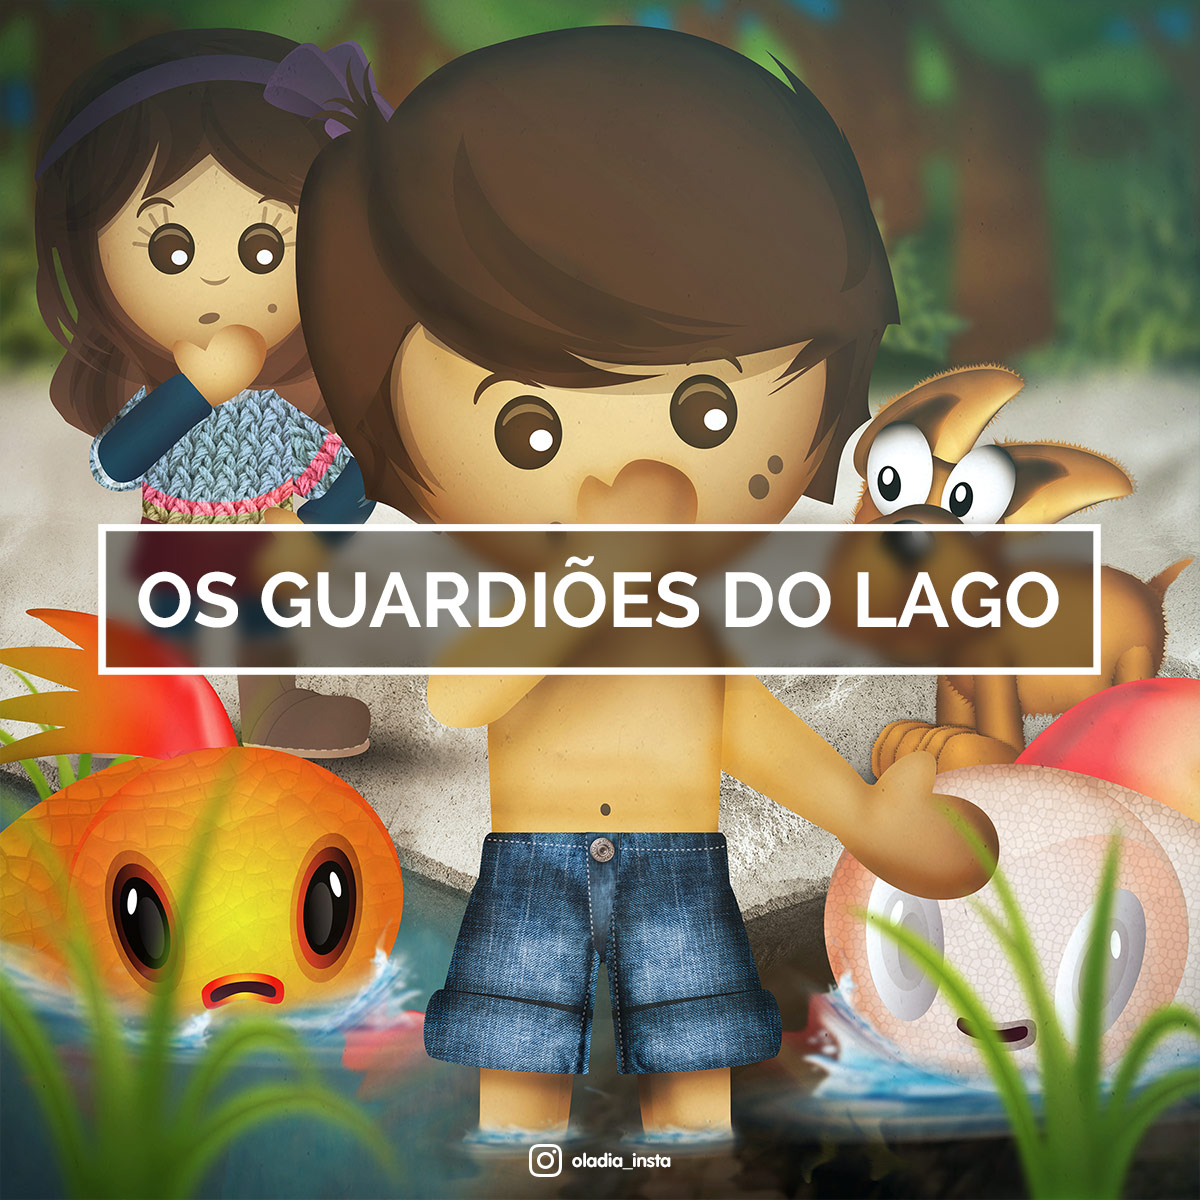 Os Guardiões do Lago Oládia